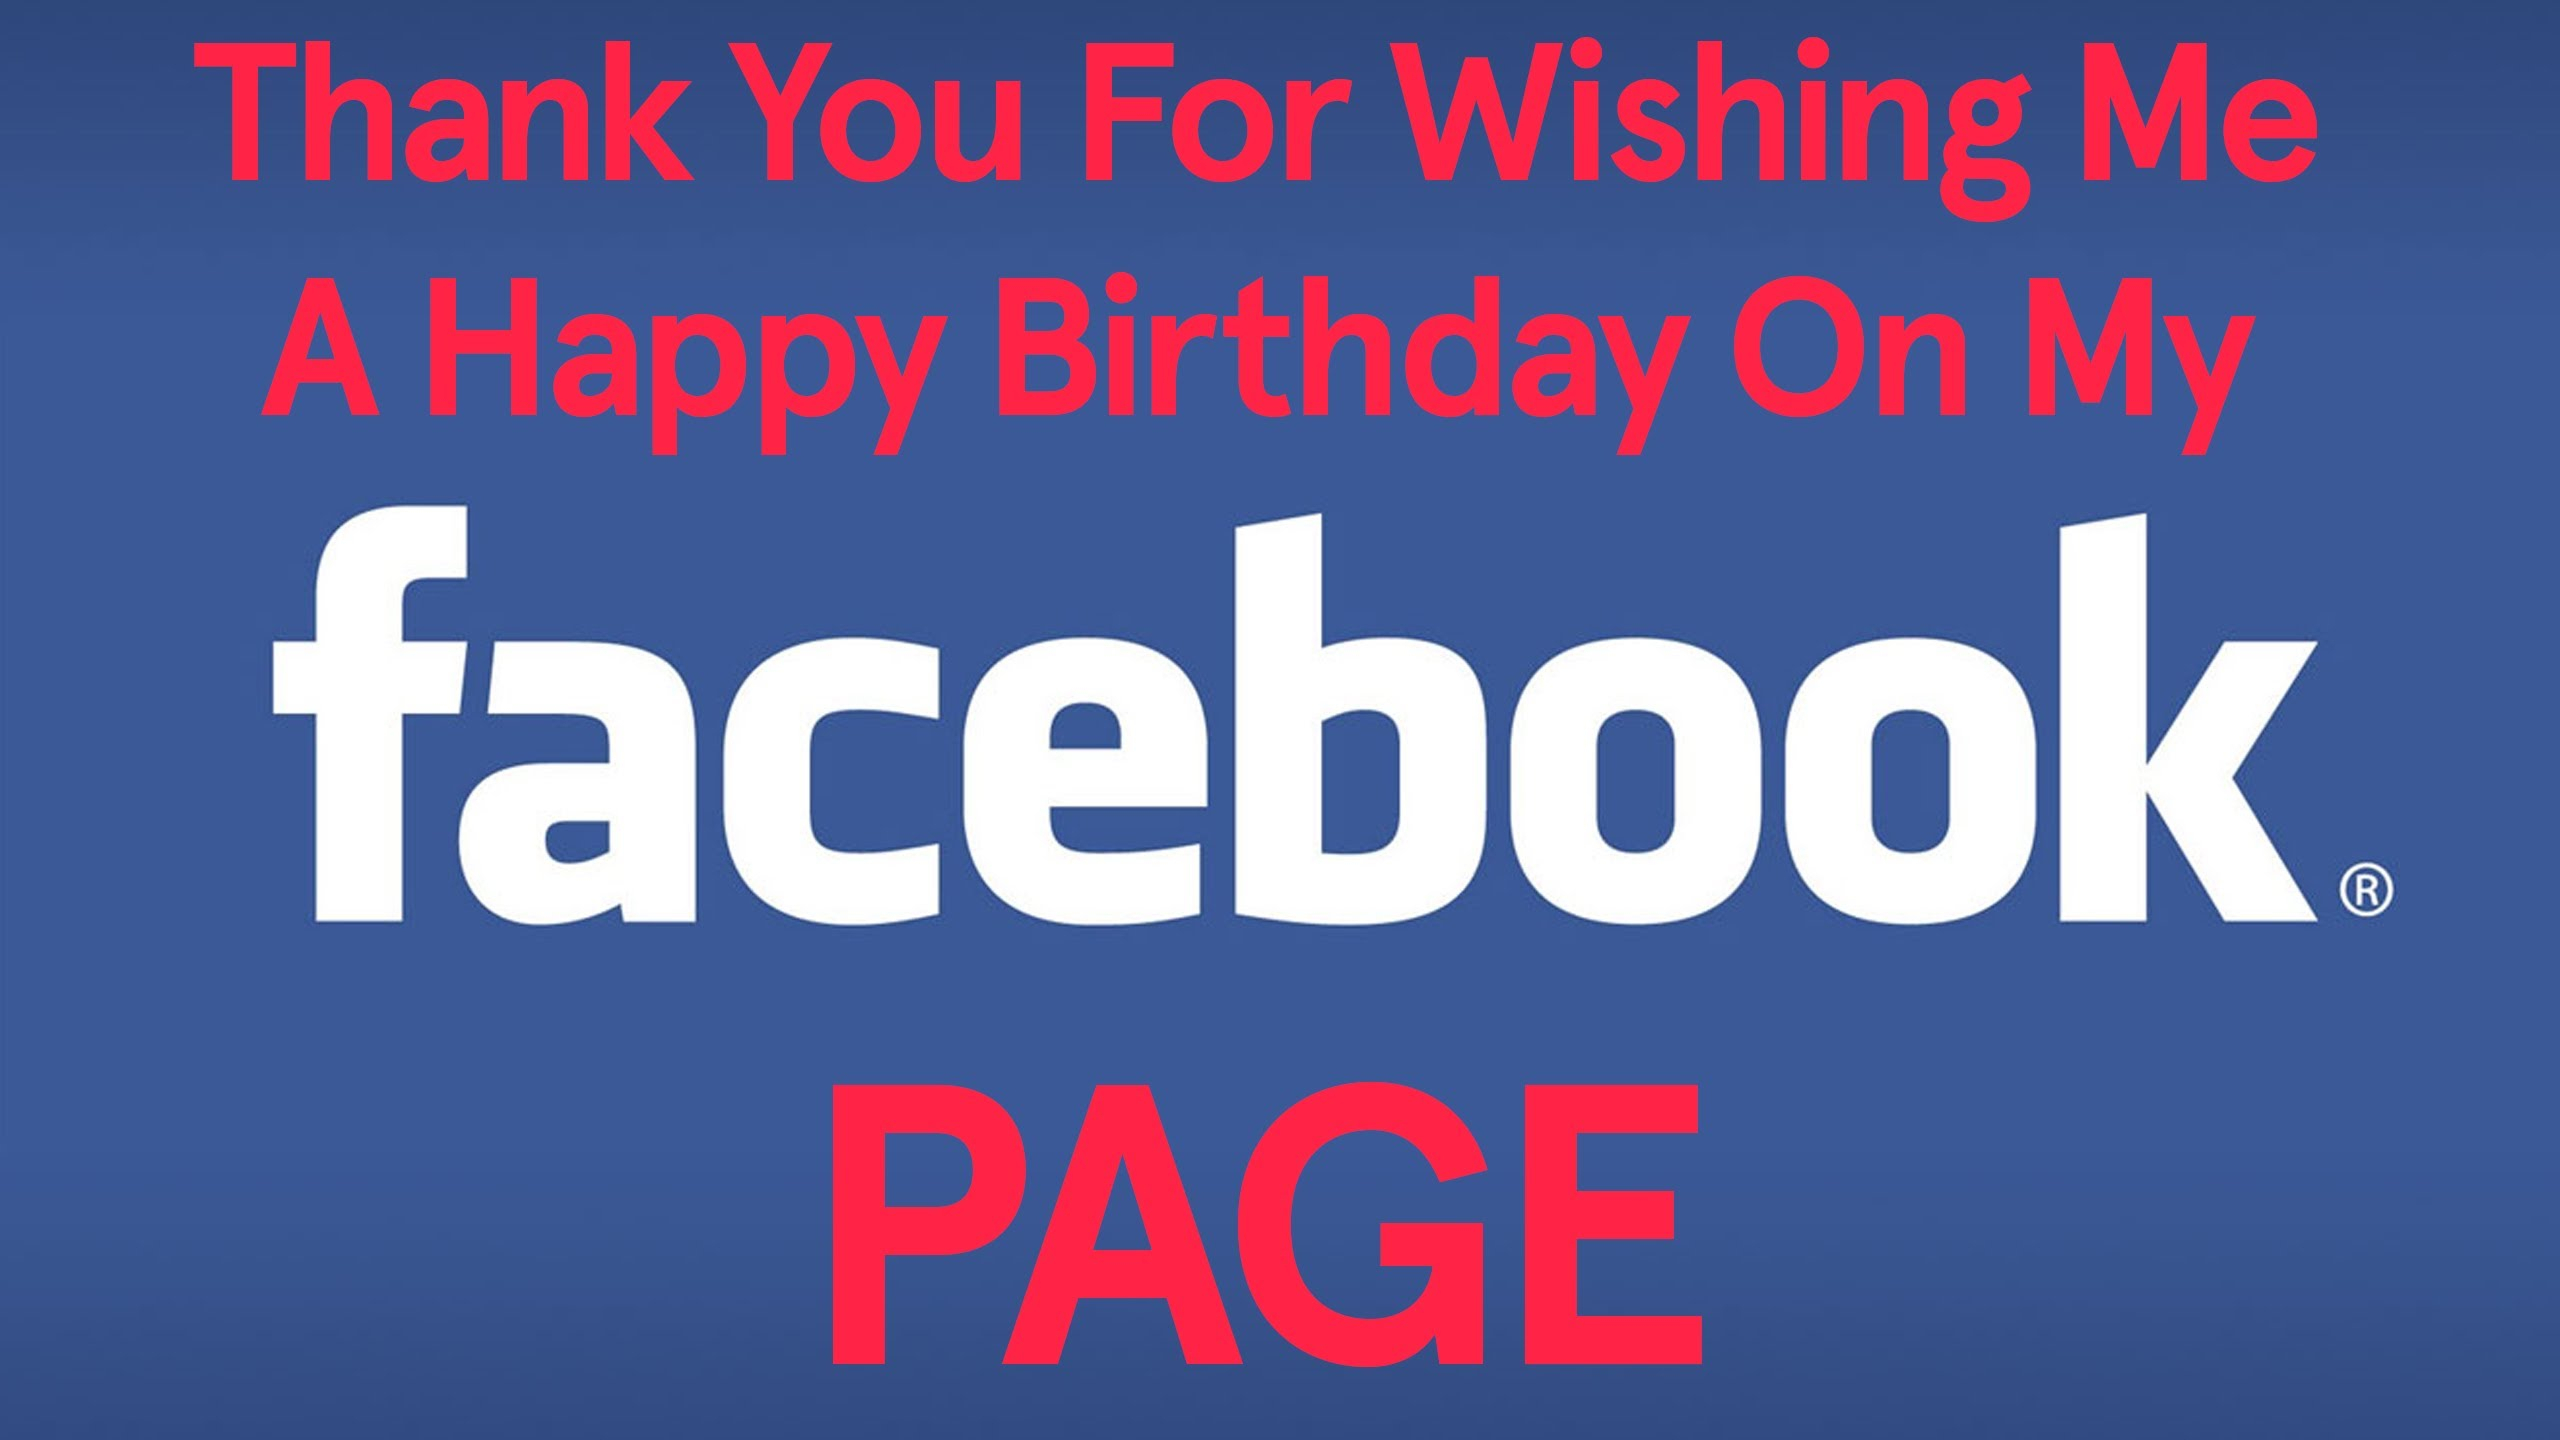 funny thank you message for birthday wishes on facebook ; thank-you-for-the-birthday-wishes-quotes-funny-birthday-wishes-quotes-friend-thank-you-religious-for-viewing-to-a